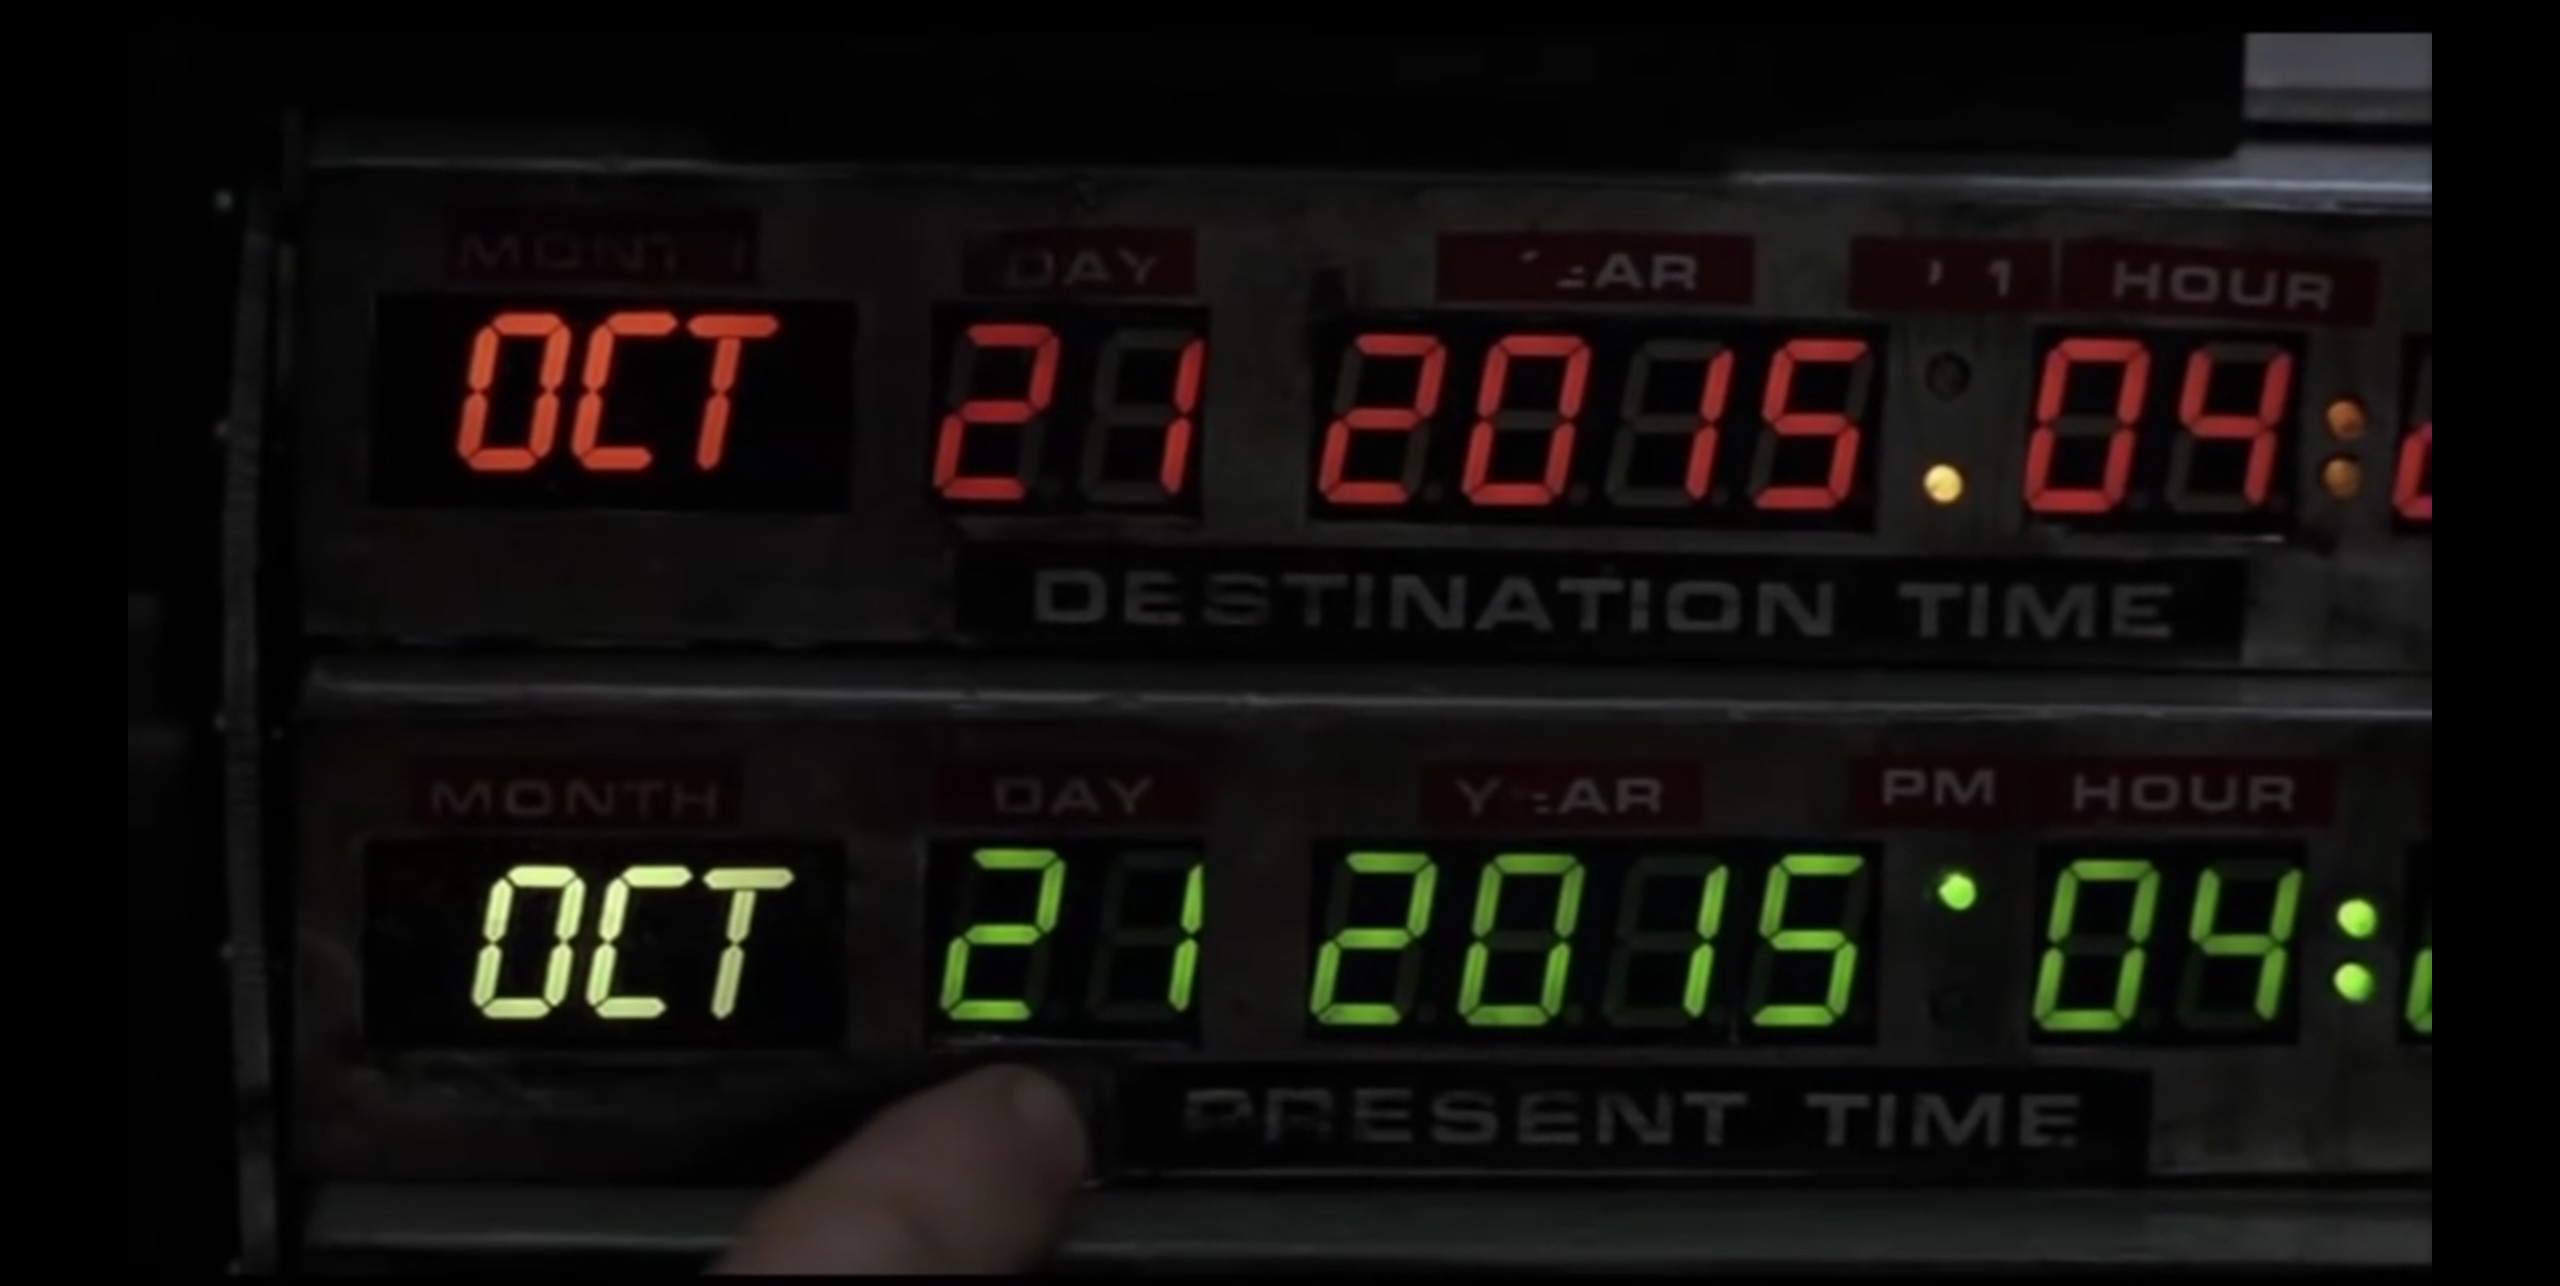 Back to the Future - October 21, 2015